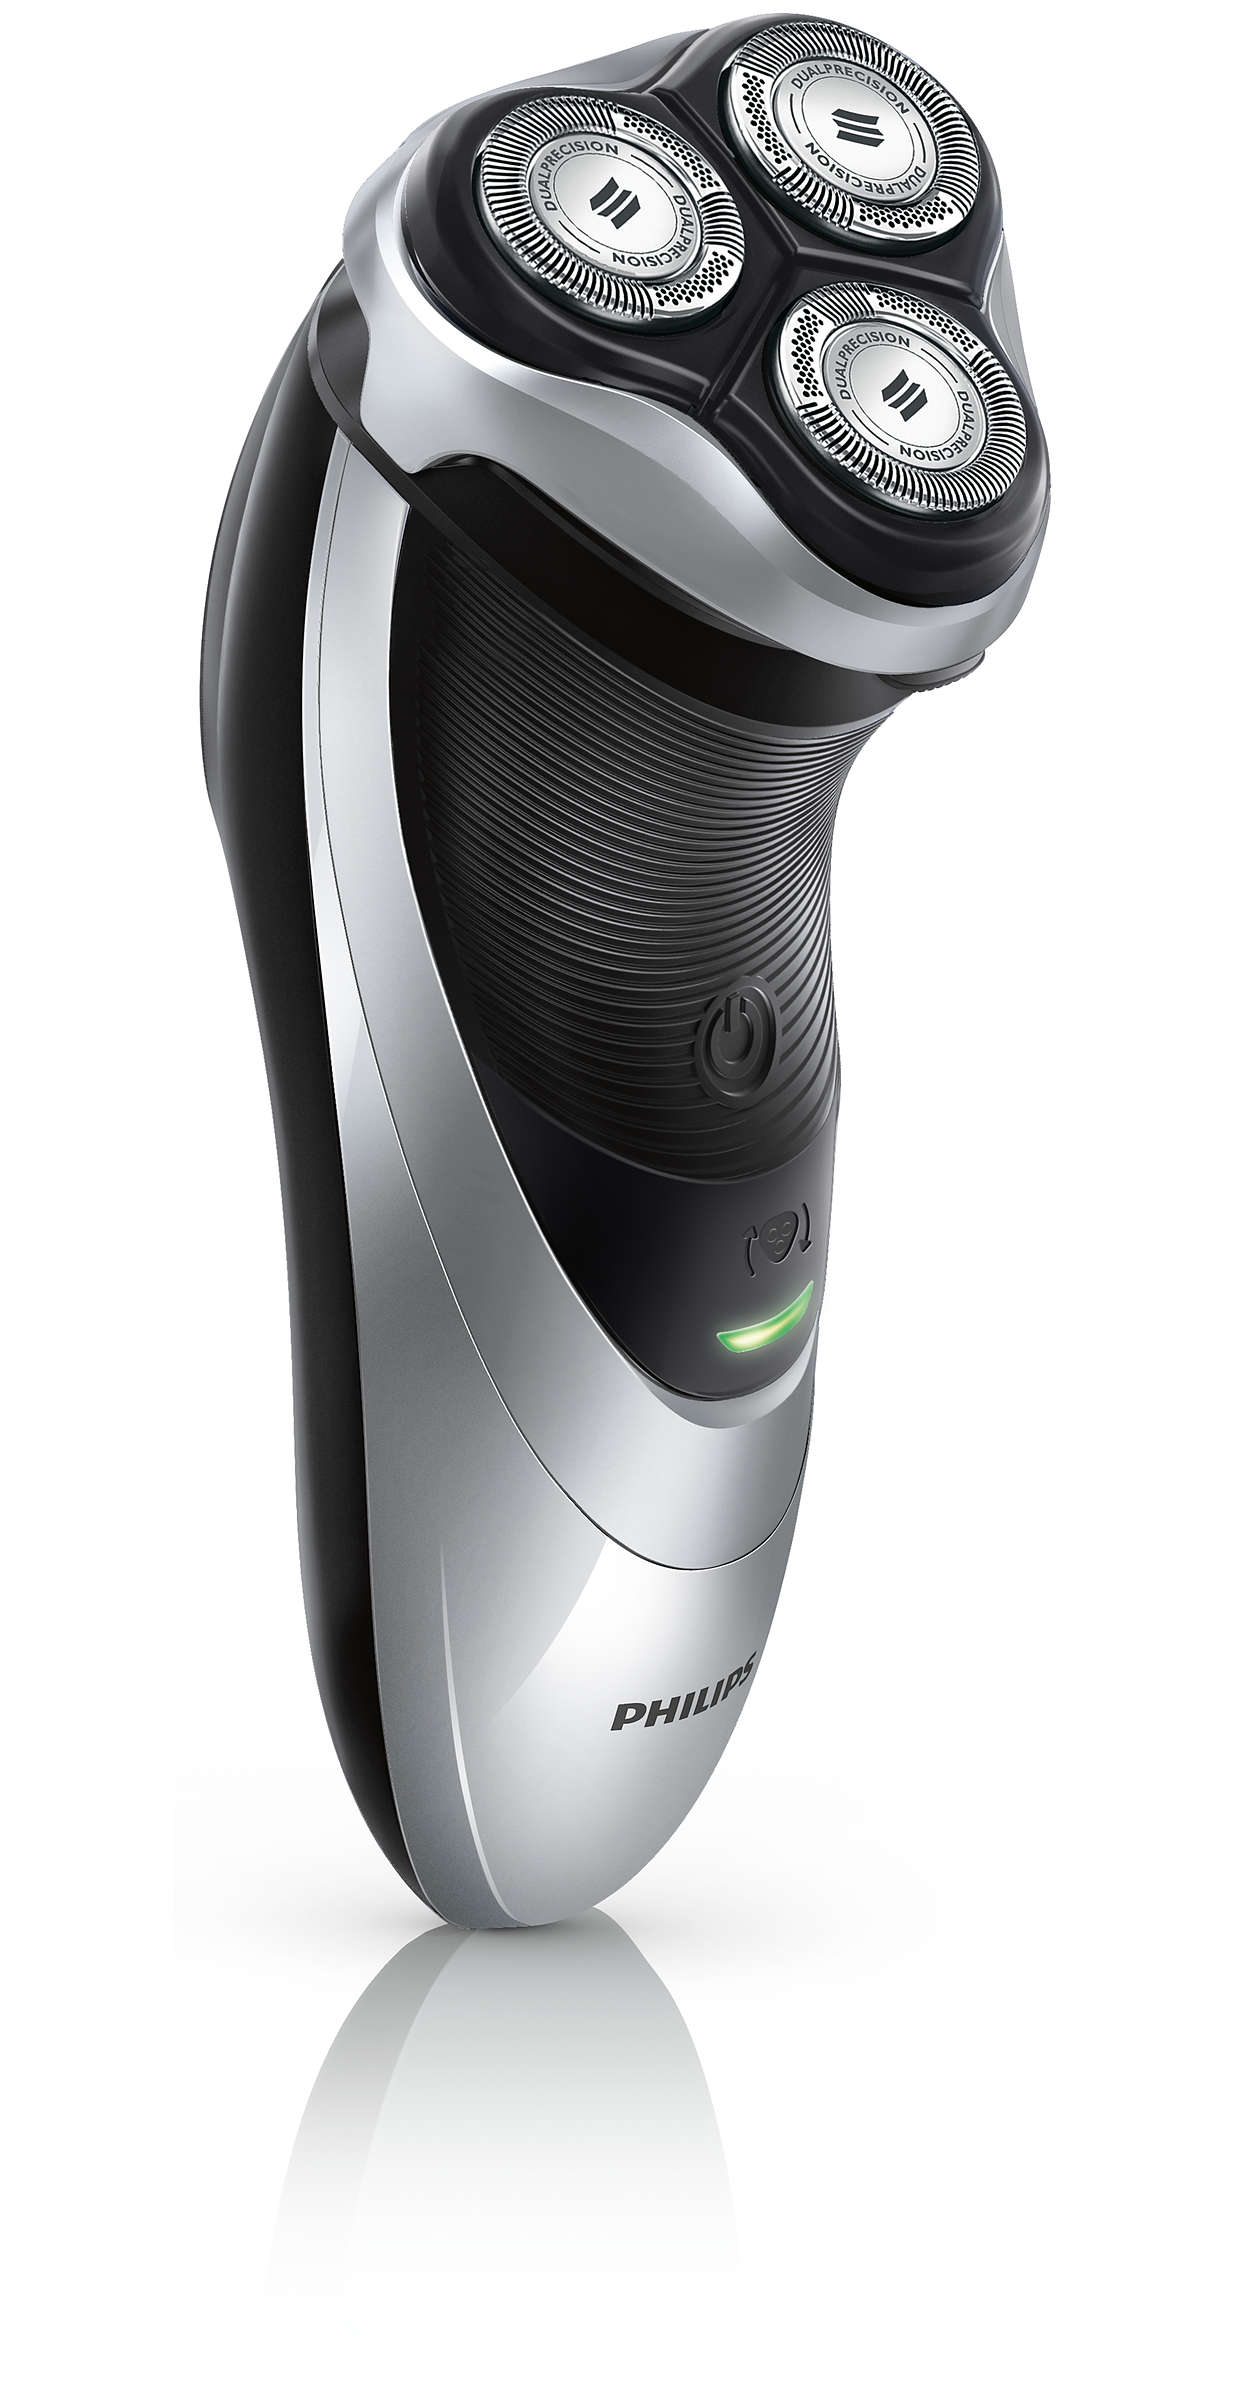 Philips PowerTouch-systeem